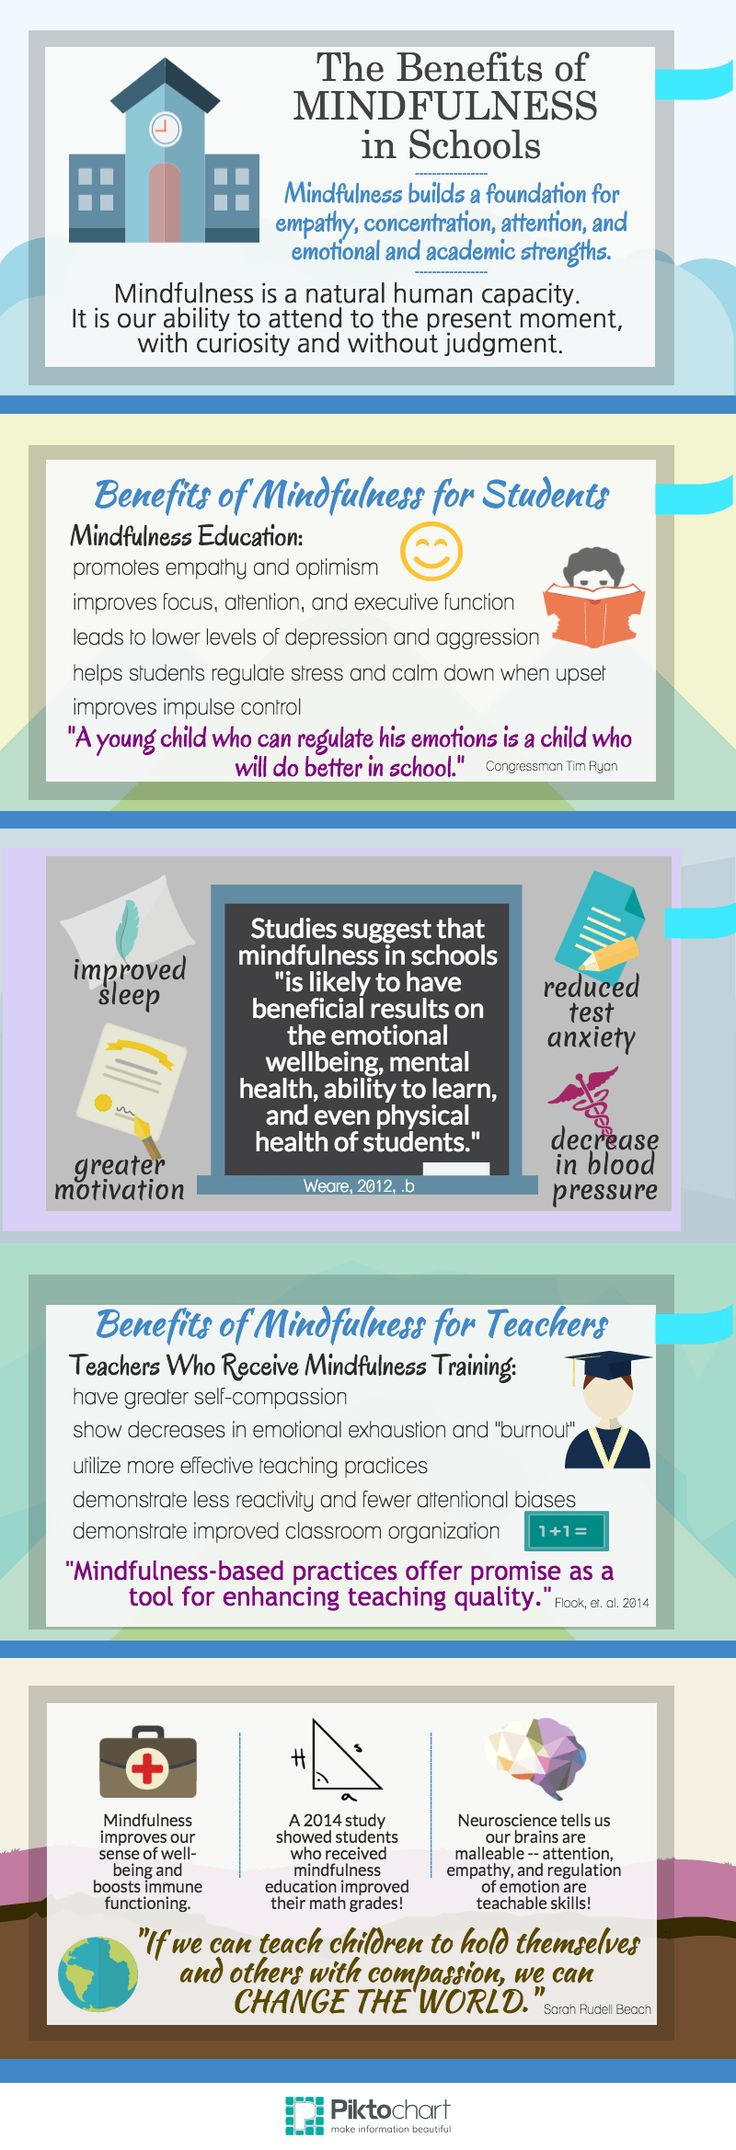 39 best school images on Pinterest | School, Classroom ideas and 2nd ...